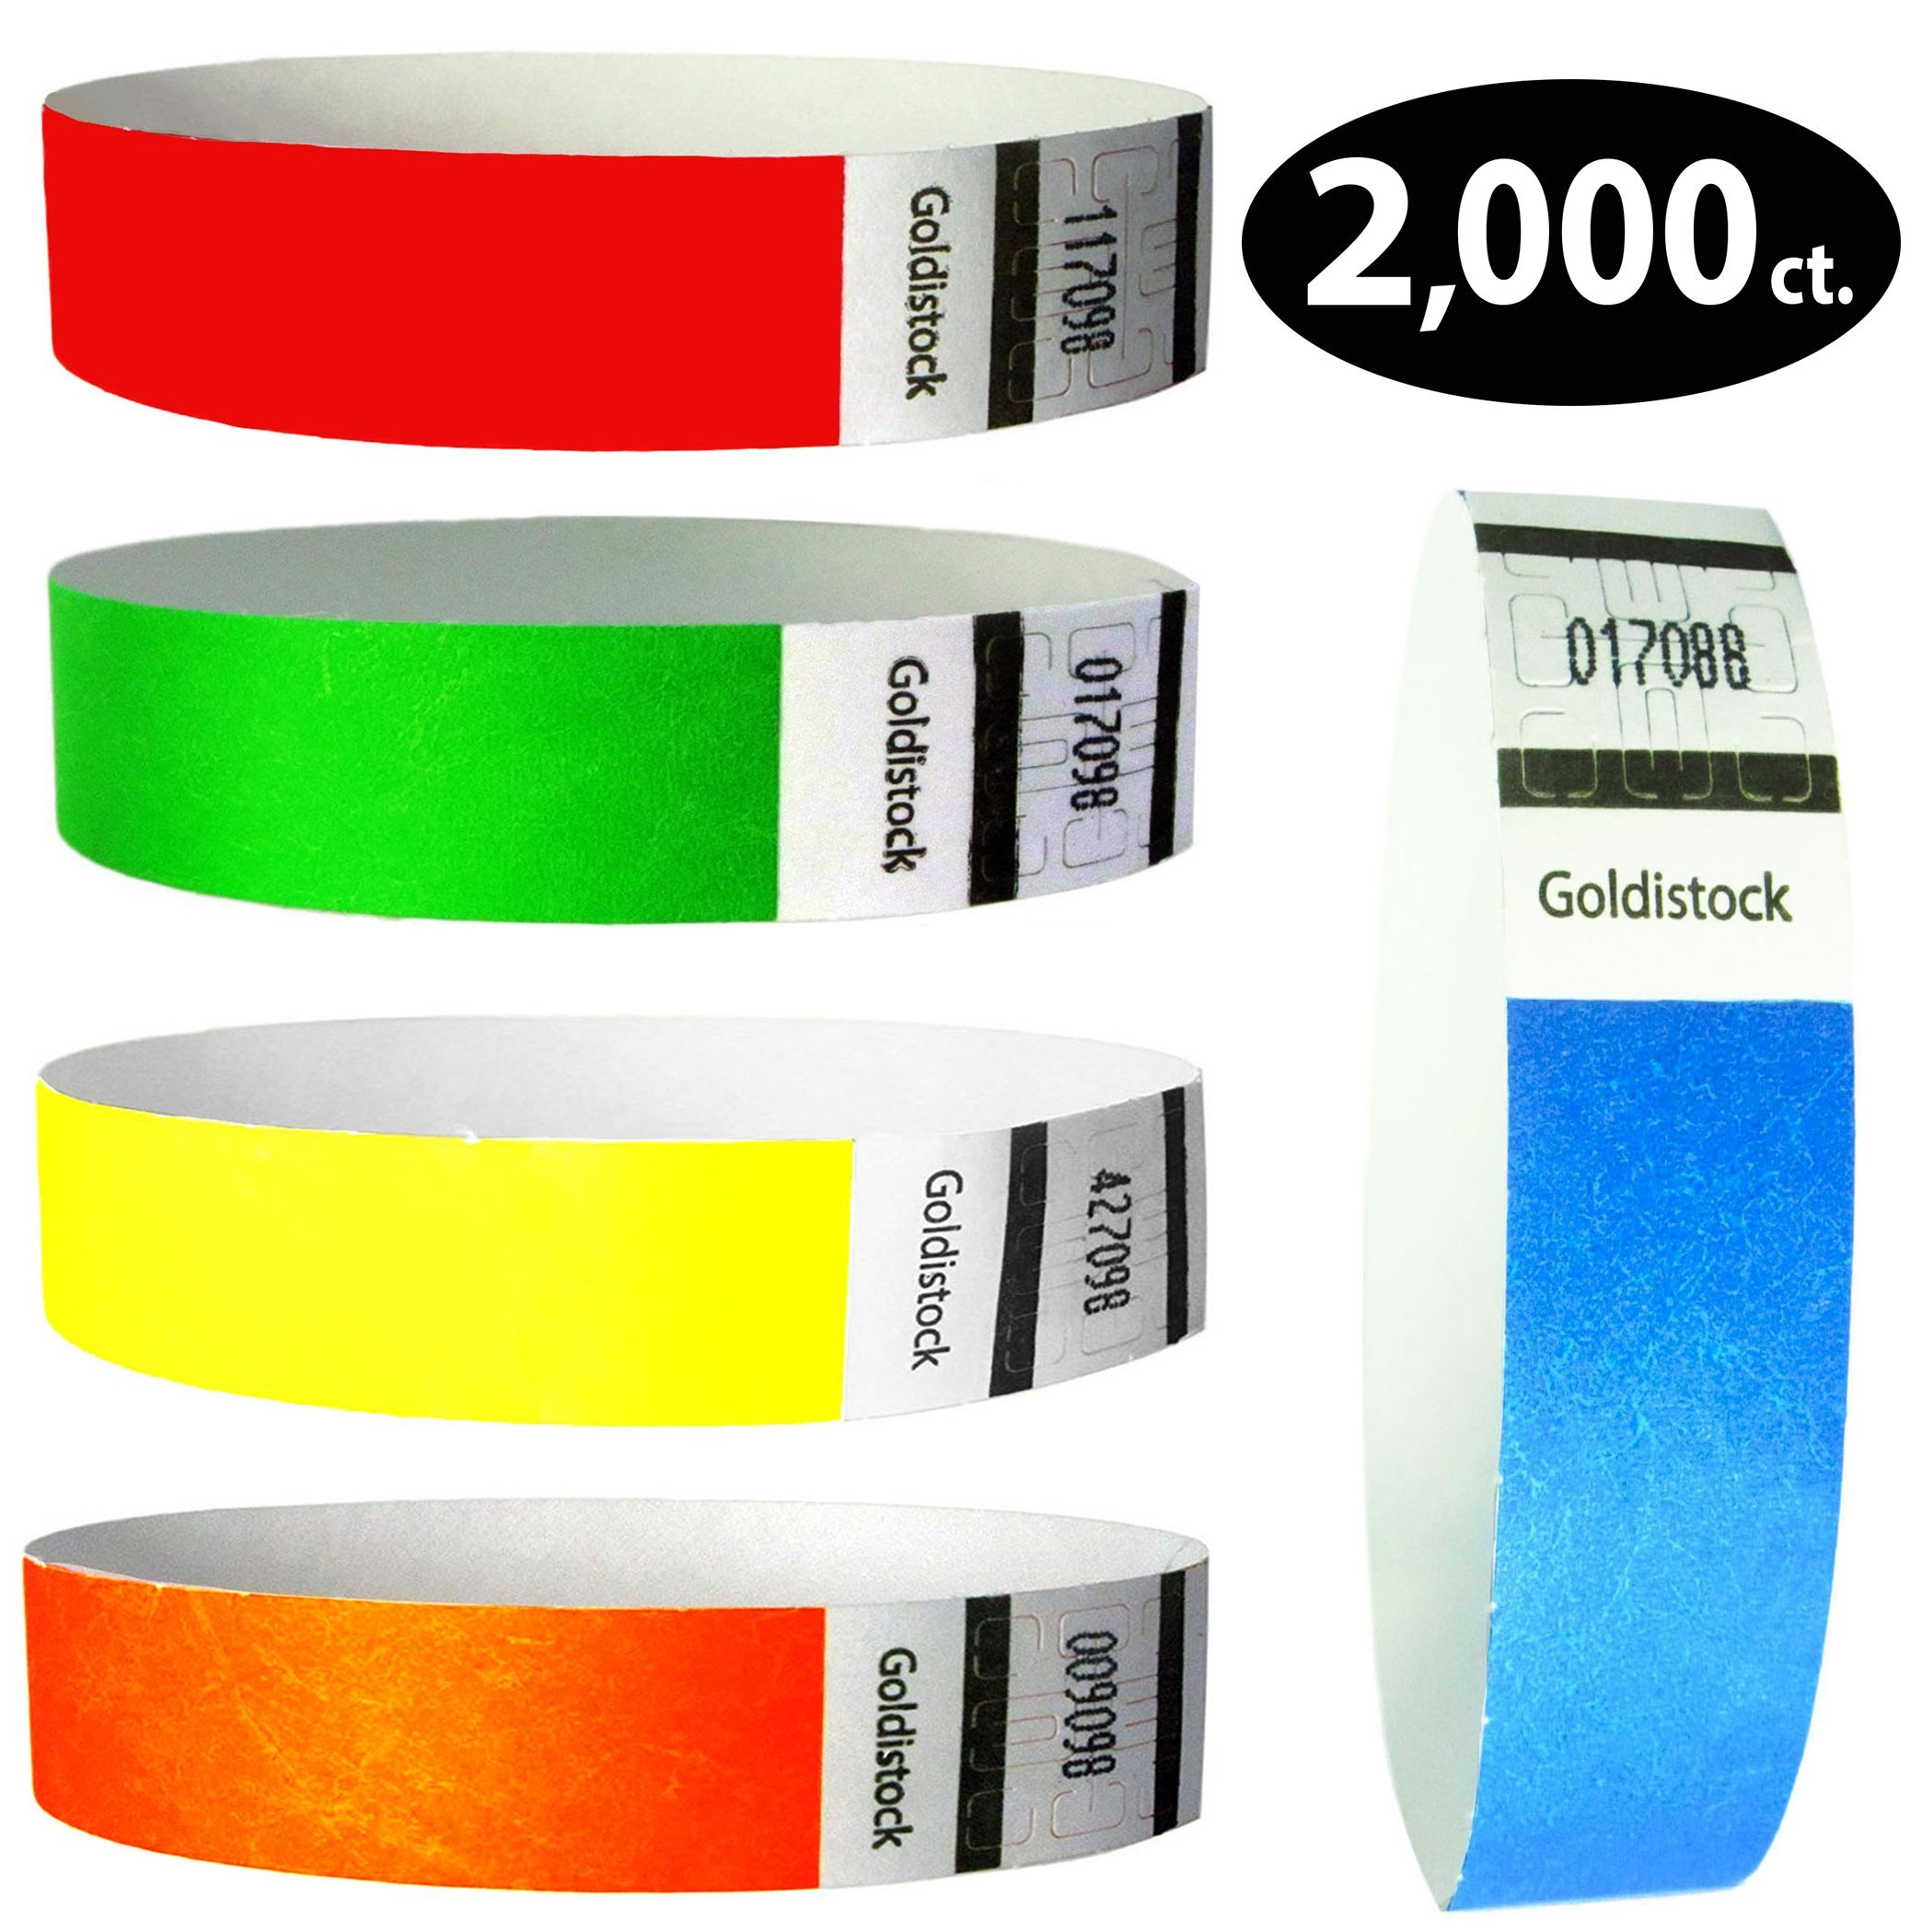 Tyvek Wristbands - Goldistock 2,000 Count Rainbow Variety Pack - ¾'' Arm Bands -400 Each: Neon Green, Blue, Red, Yellow & OrangePaper-like Party Armbands - Heavier Tyvek Wrist Bands = SuperiorEvents by Goldistock